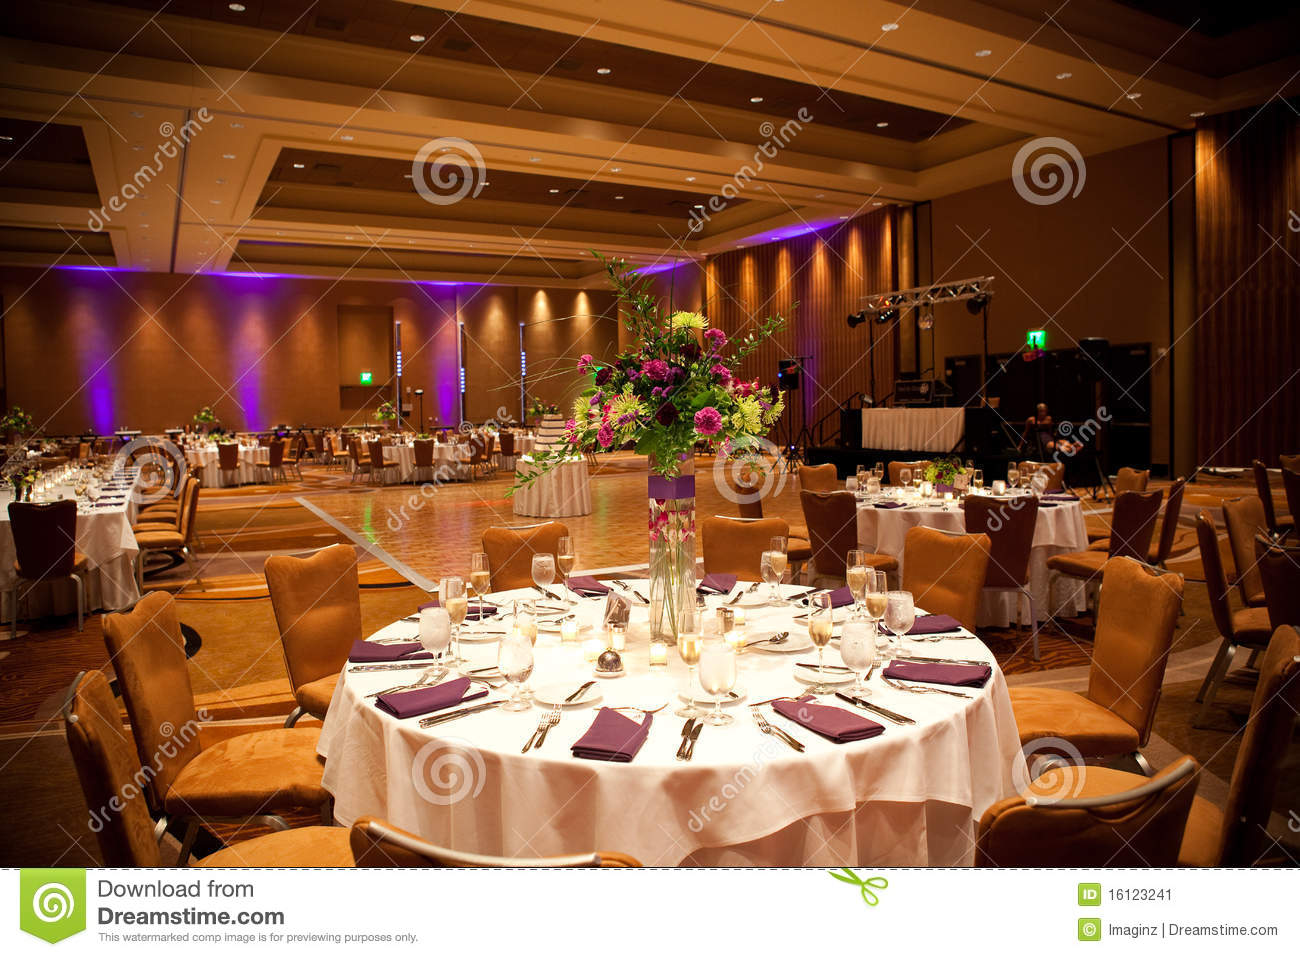 Tables At Wedding Reception Stock Image - Image: 16123241